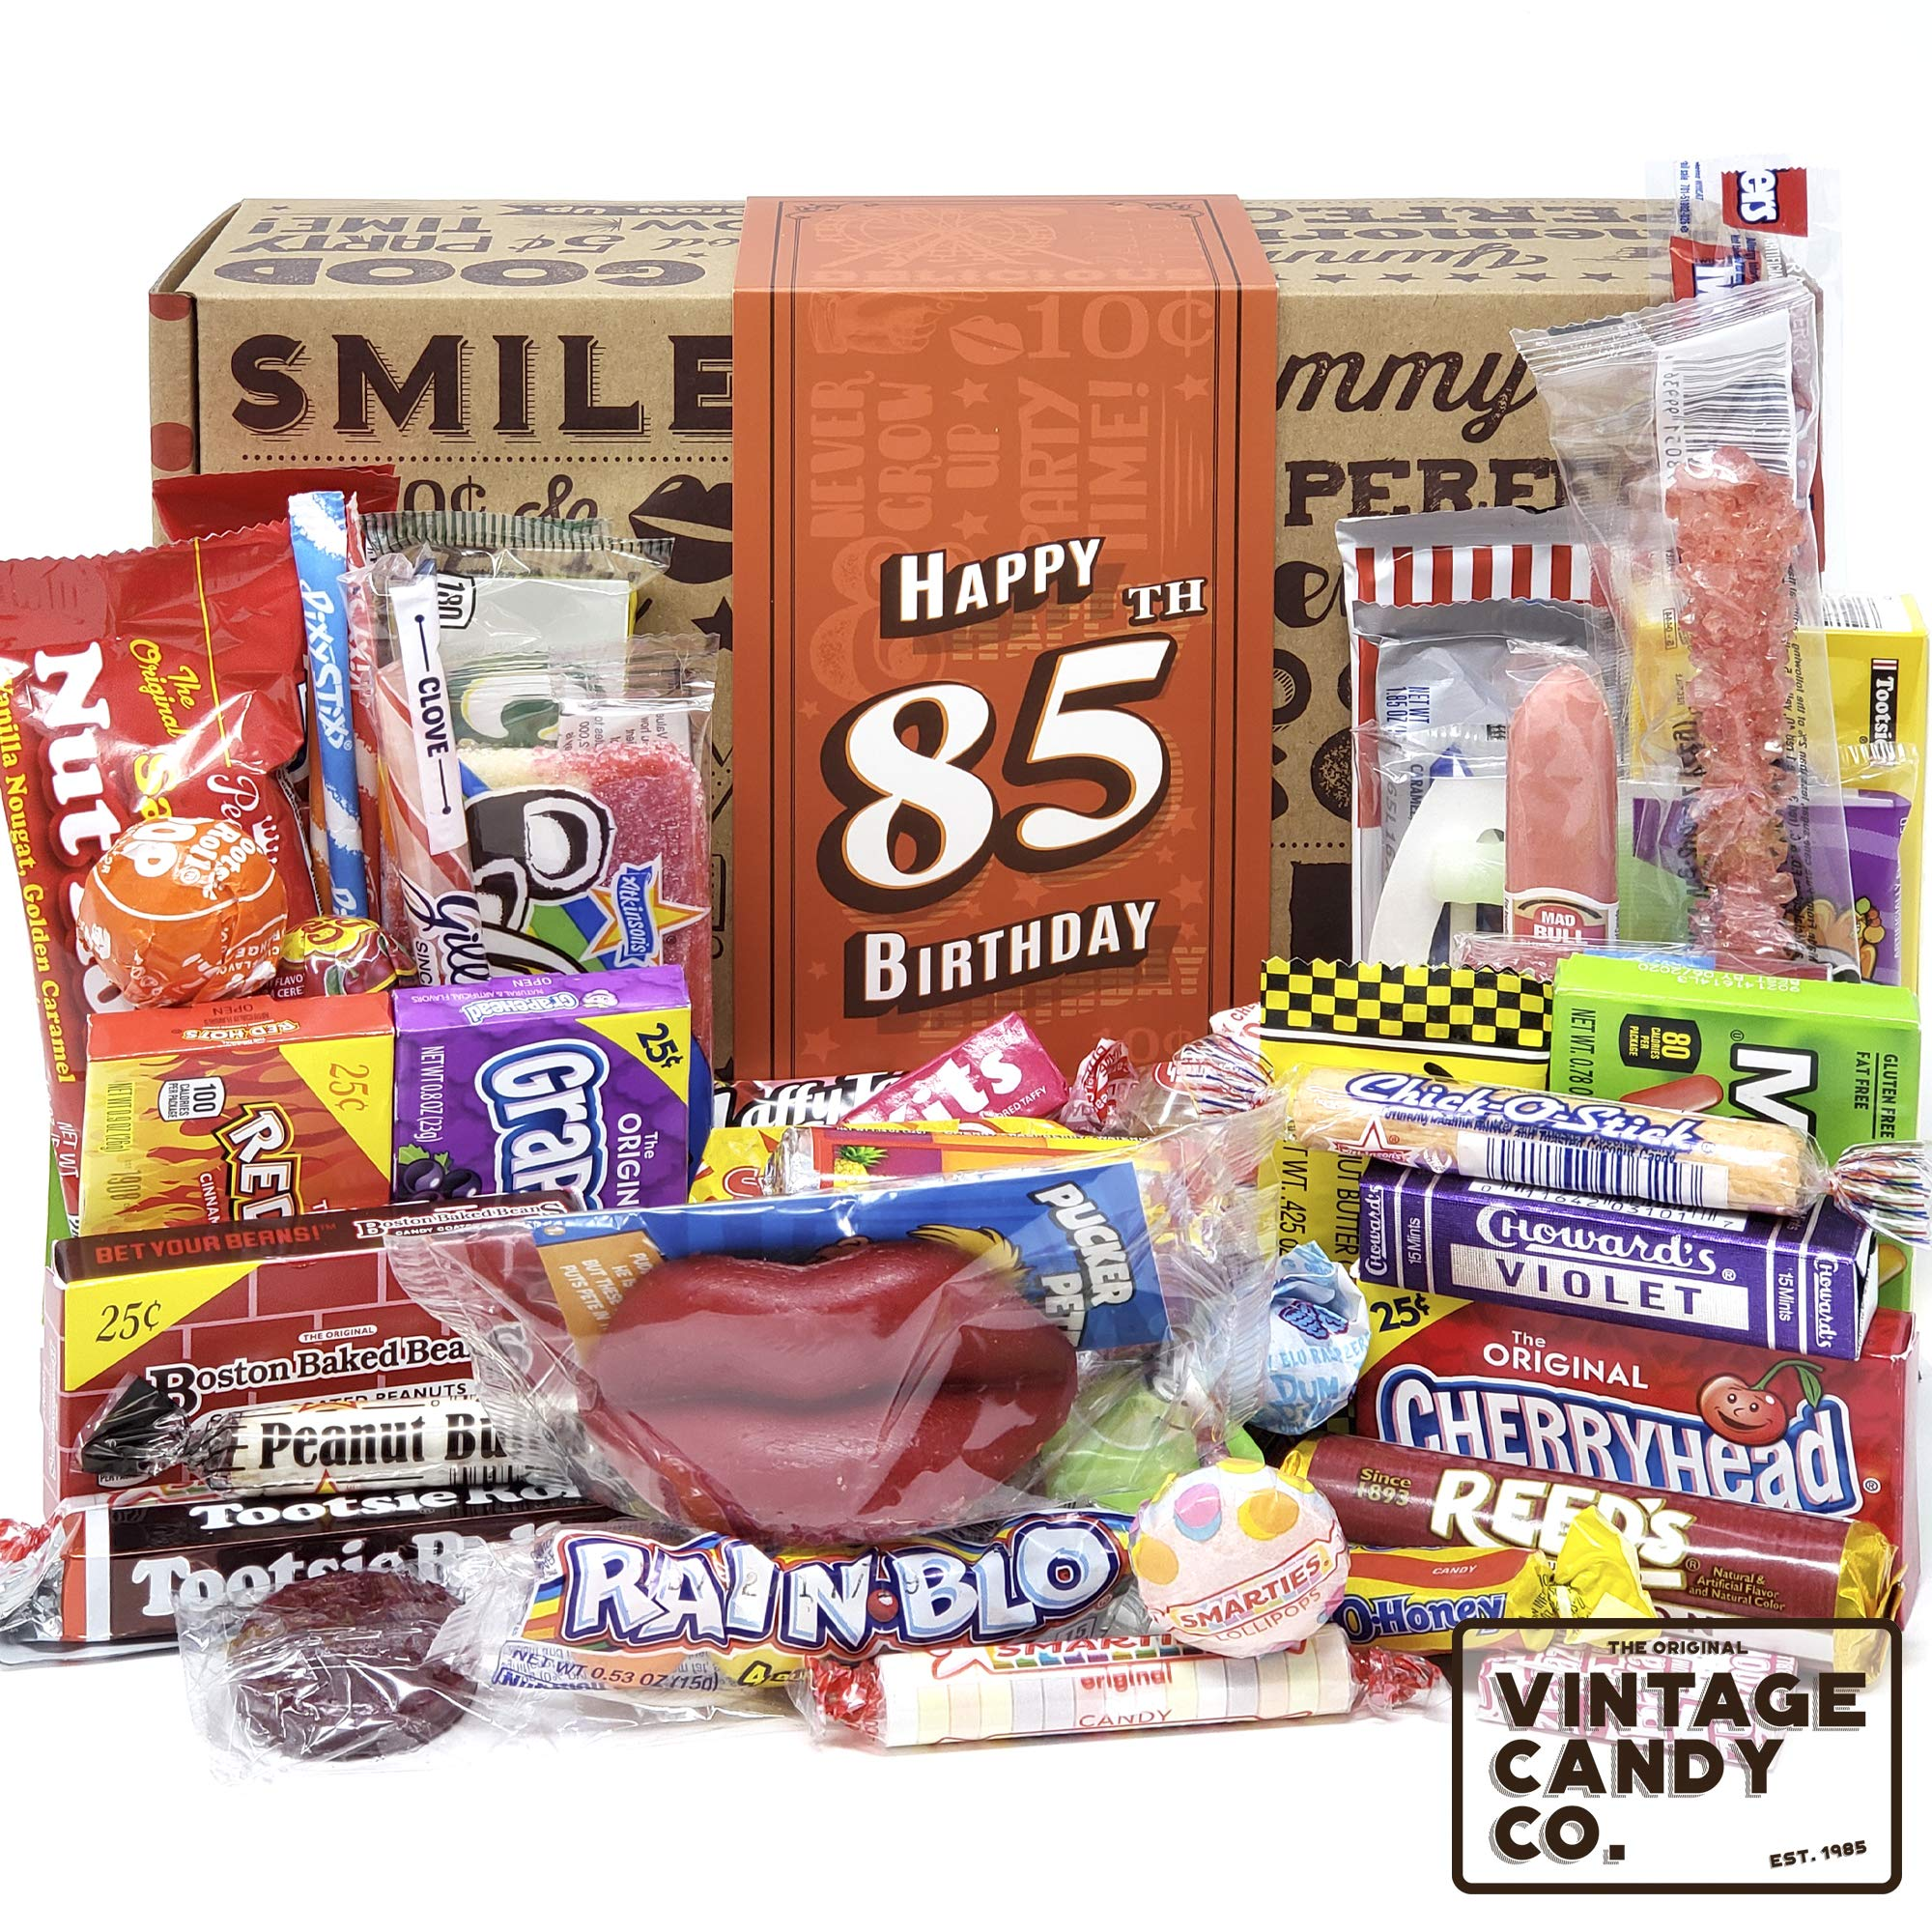 VINTAGE CANDY CO. 85TH BIRTHDAY RETRO CANDY GIFT BOX - 1934 Decade Nostalgic Childhood Candies - Fun Gag Gift Basket for Milestone Eighty Five Birthday - PERFECT For Man Or Woman Turning 85 Years Old